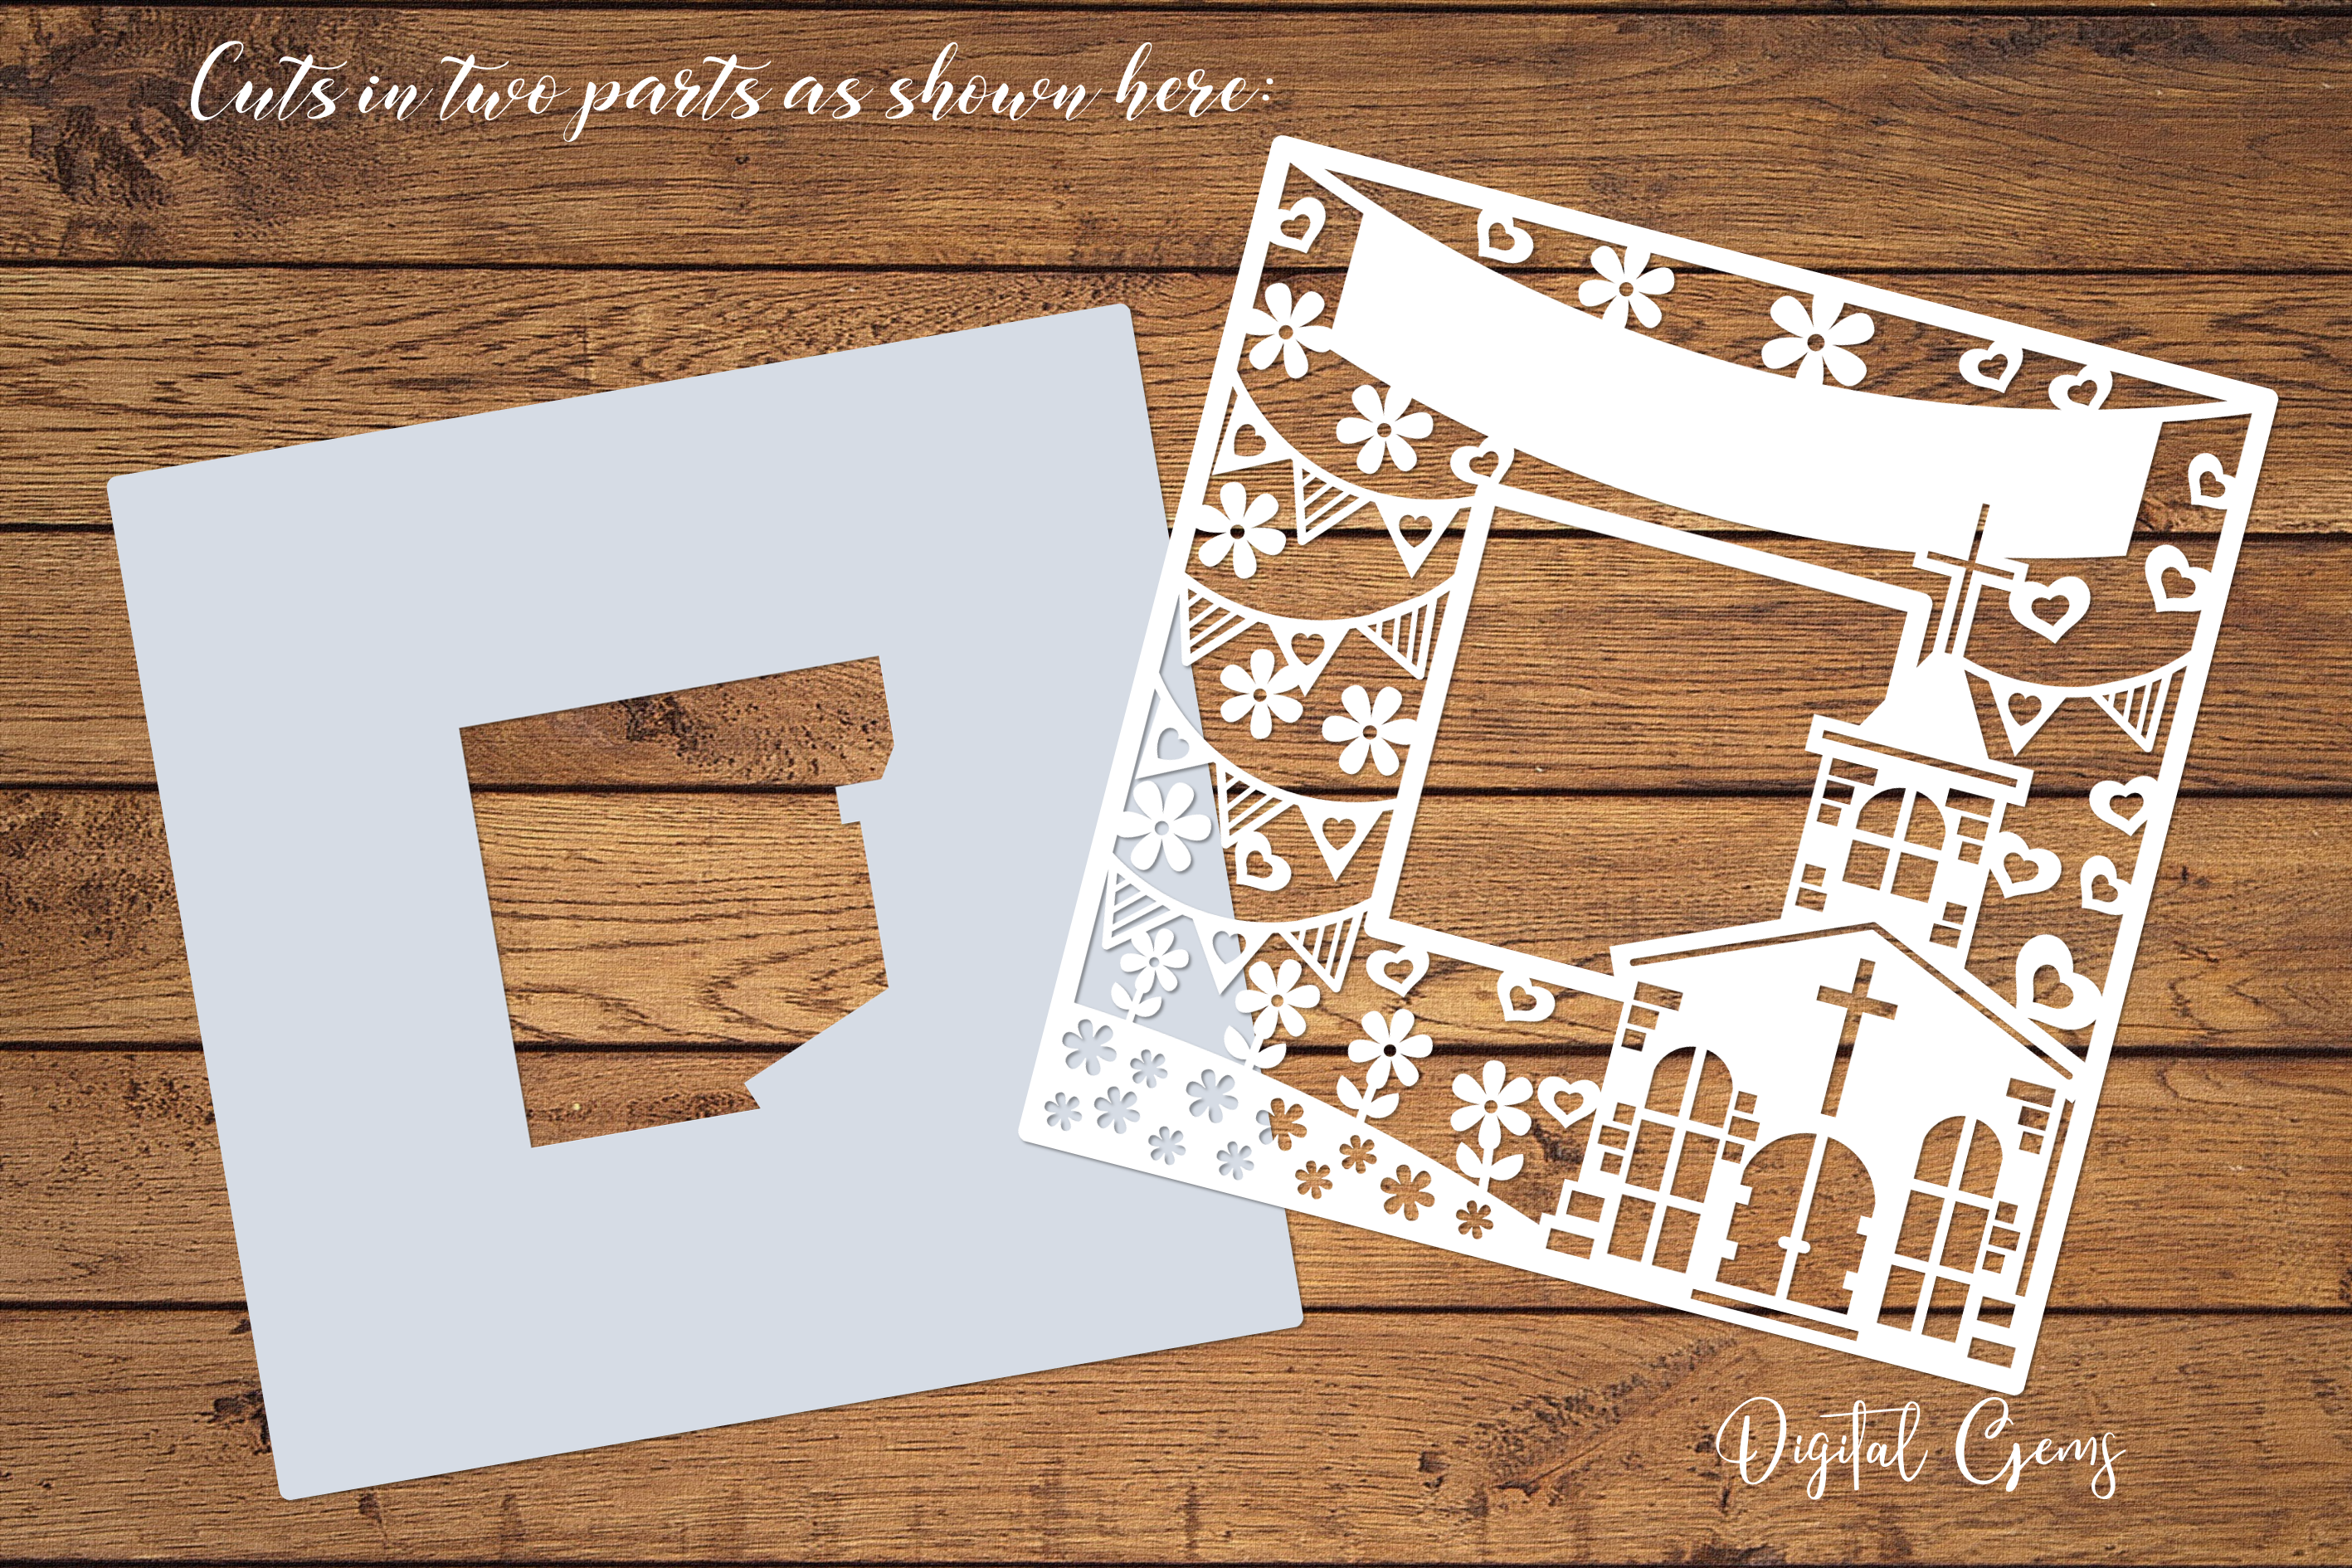 Church frame paper cut design SVG / DXF / EPS / PNG files example image 2